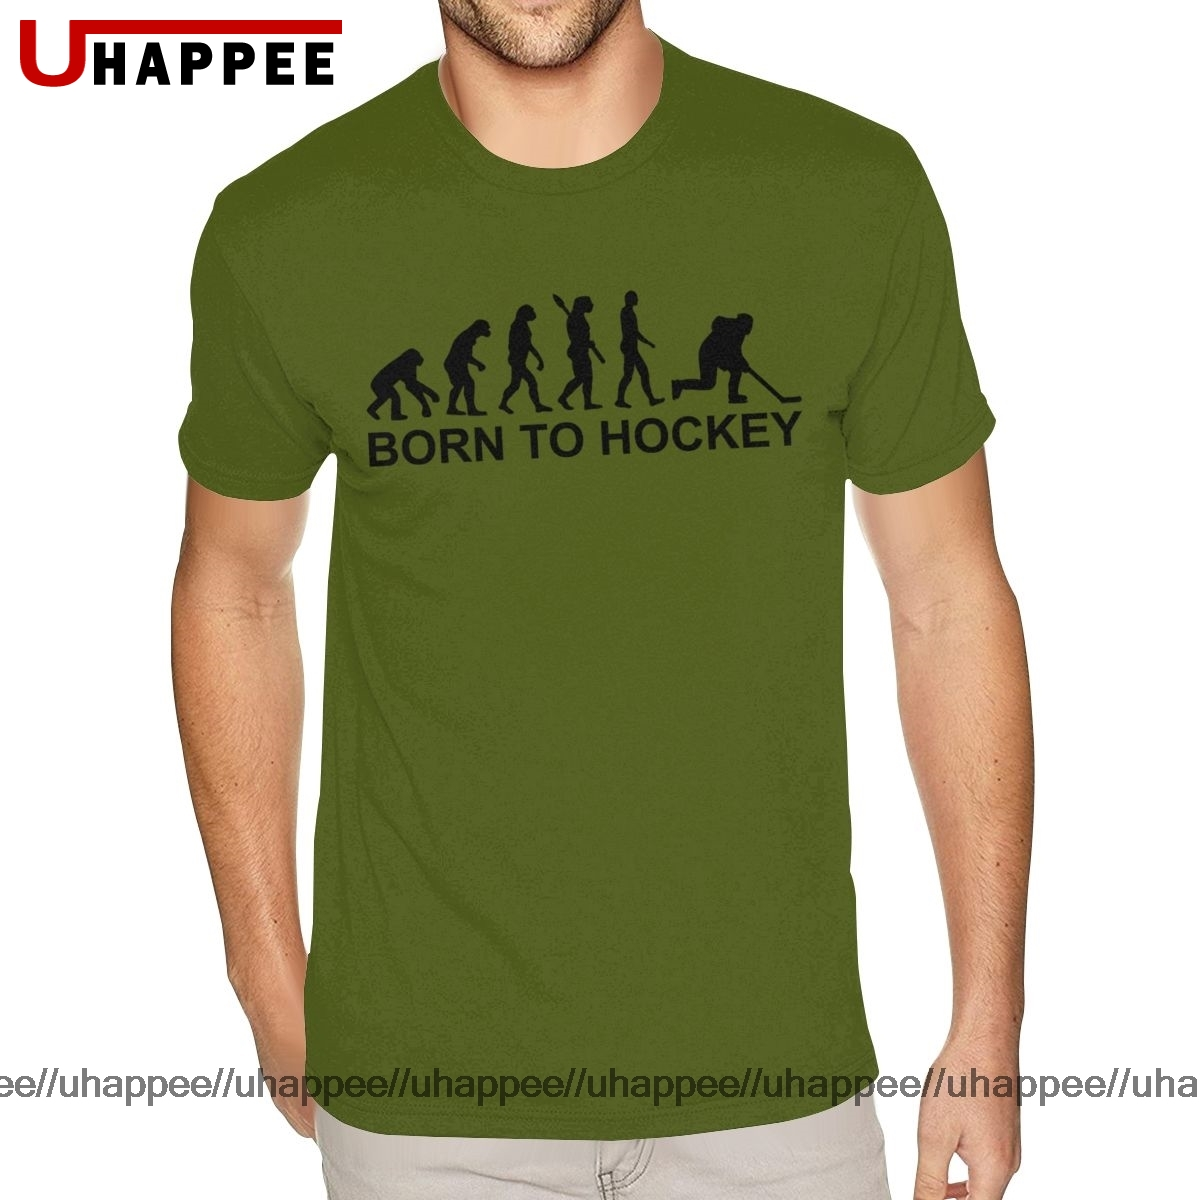 Cheap Graphic Born To Hockey Evolution Tee Shirts Men's Custom Print Short Sleeved Soft Cotton O Neck Tees Shirts